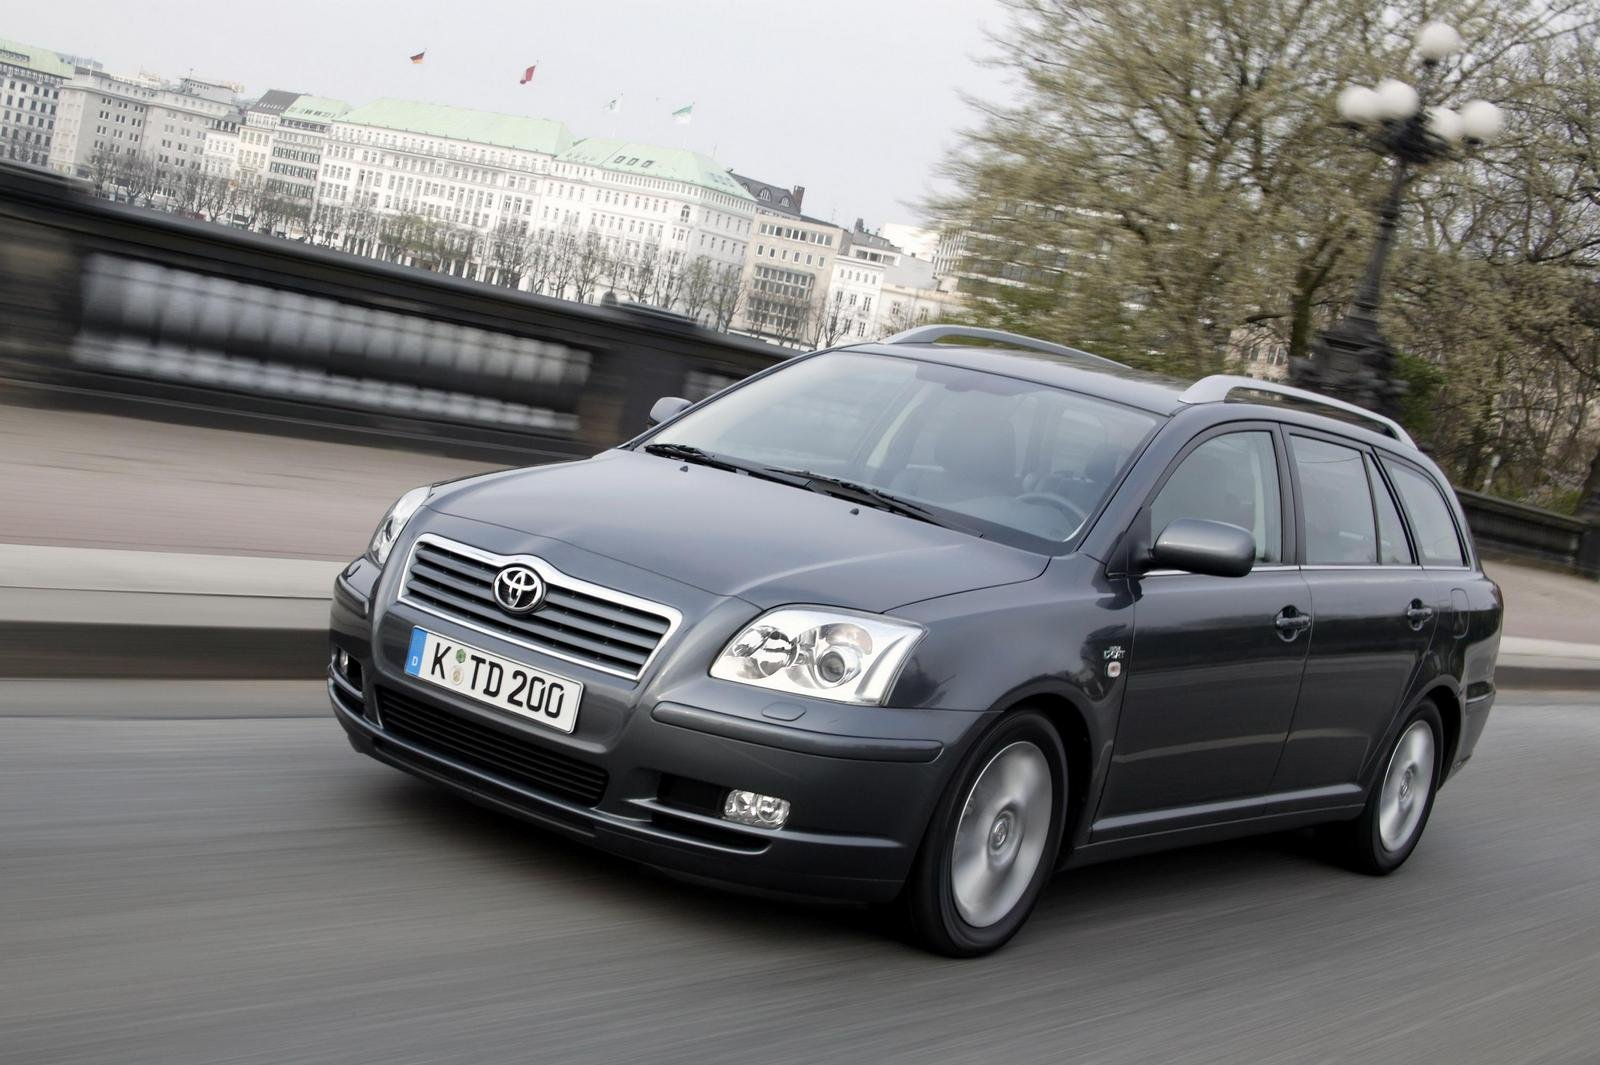 2010 Toyota Avensis Picture 242976 Car Review Top Speed